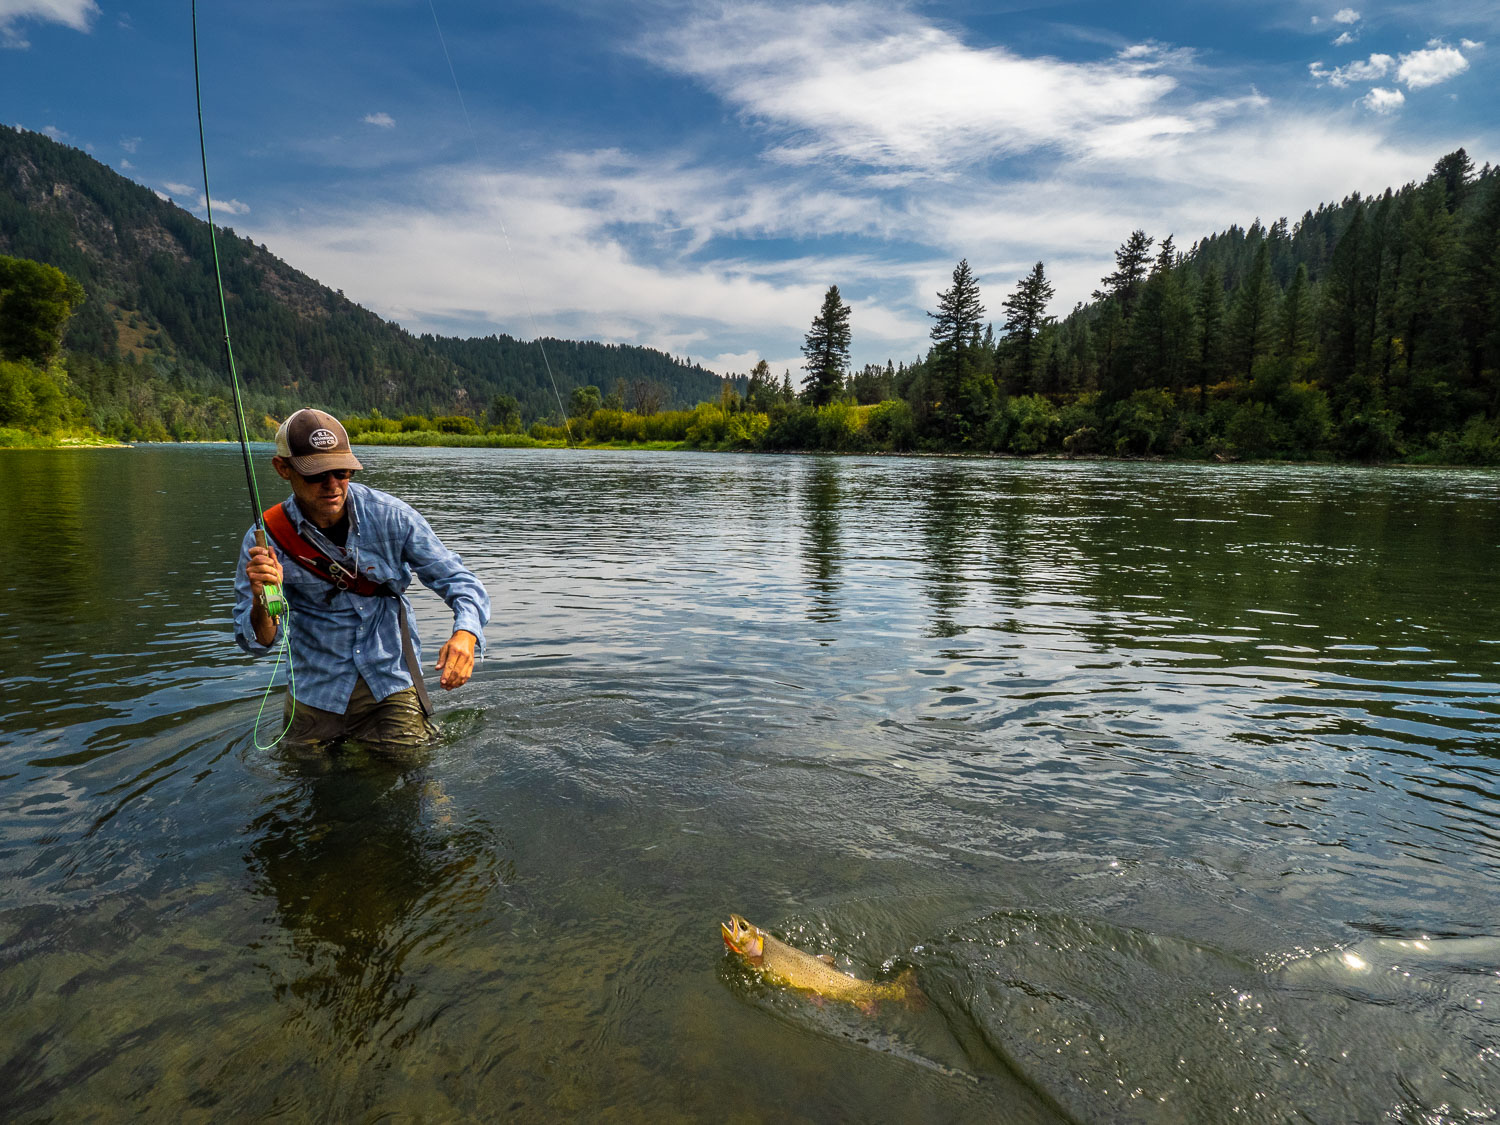 Fisherman preparing to release a Snake River Cutthroat Trout, So